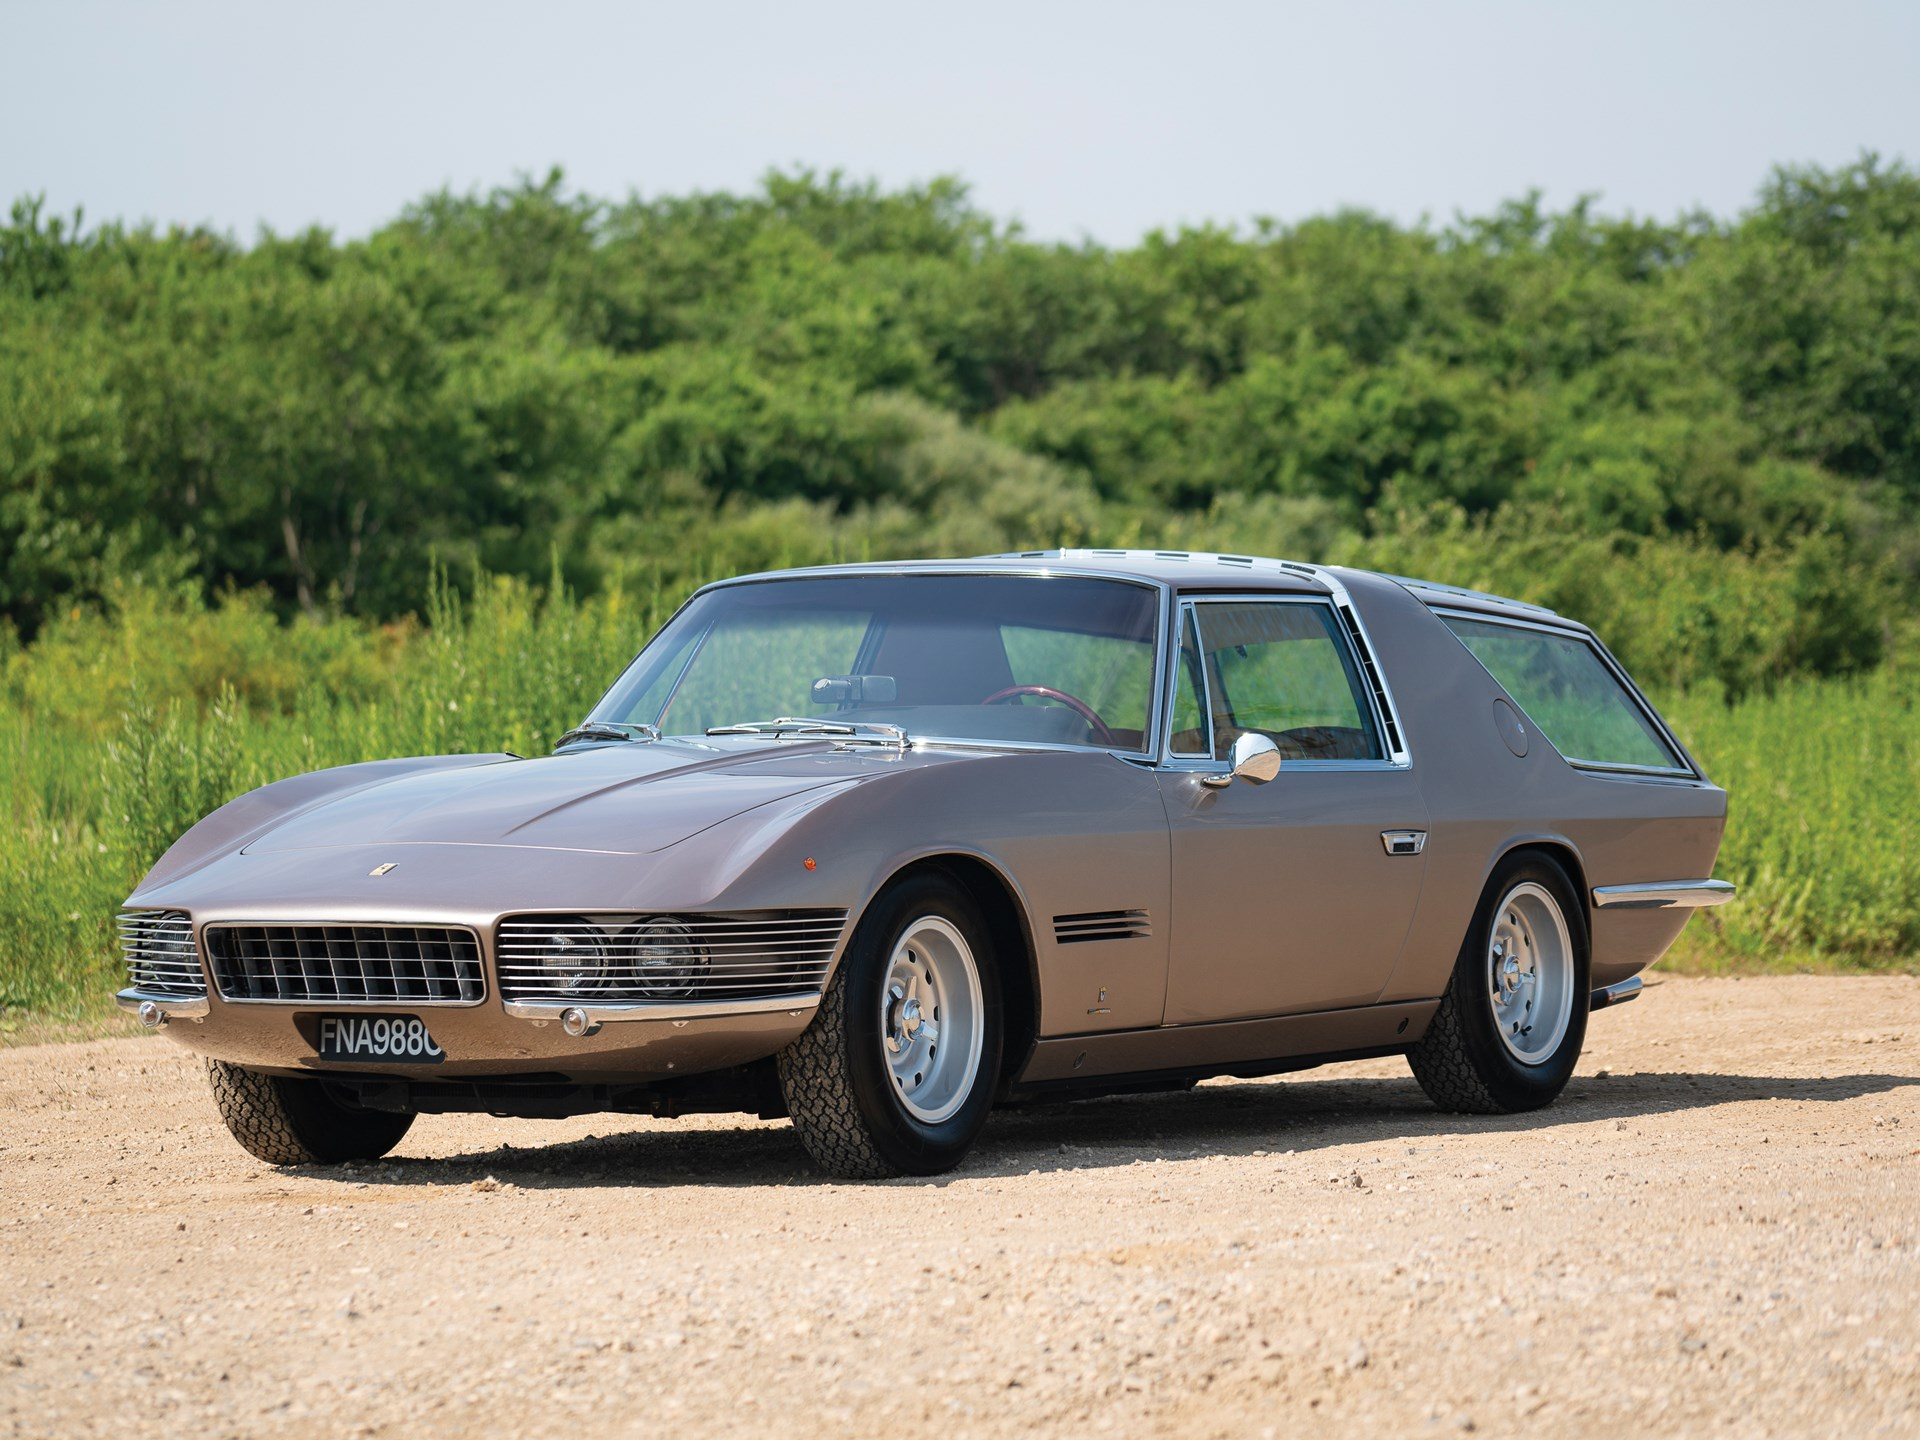 RM Sotheby's - 1965 Ferrari 330 GT 2+2 Shooting Brake by